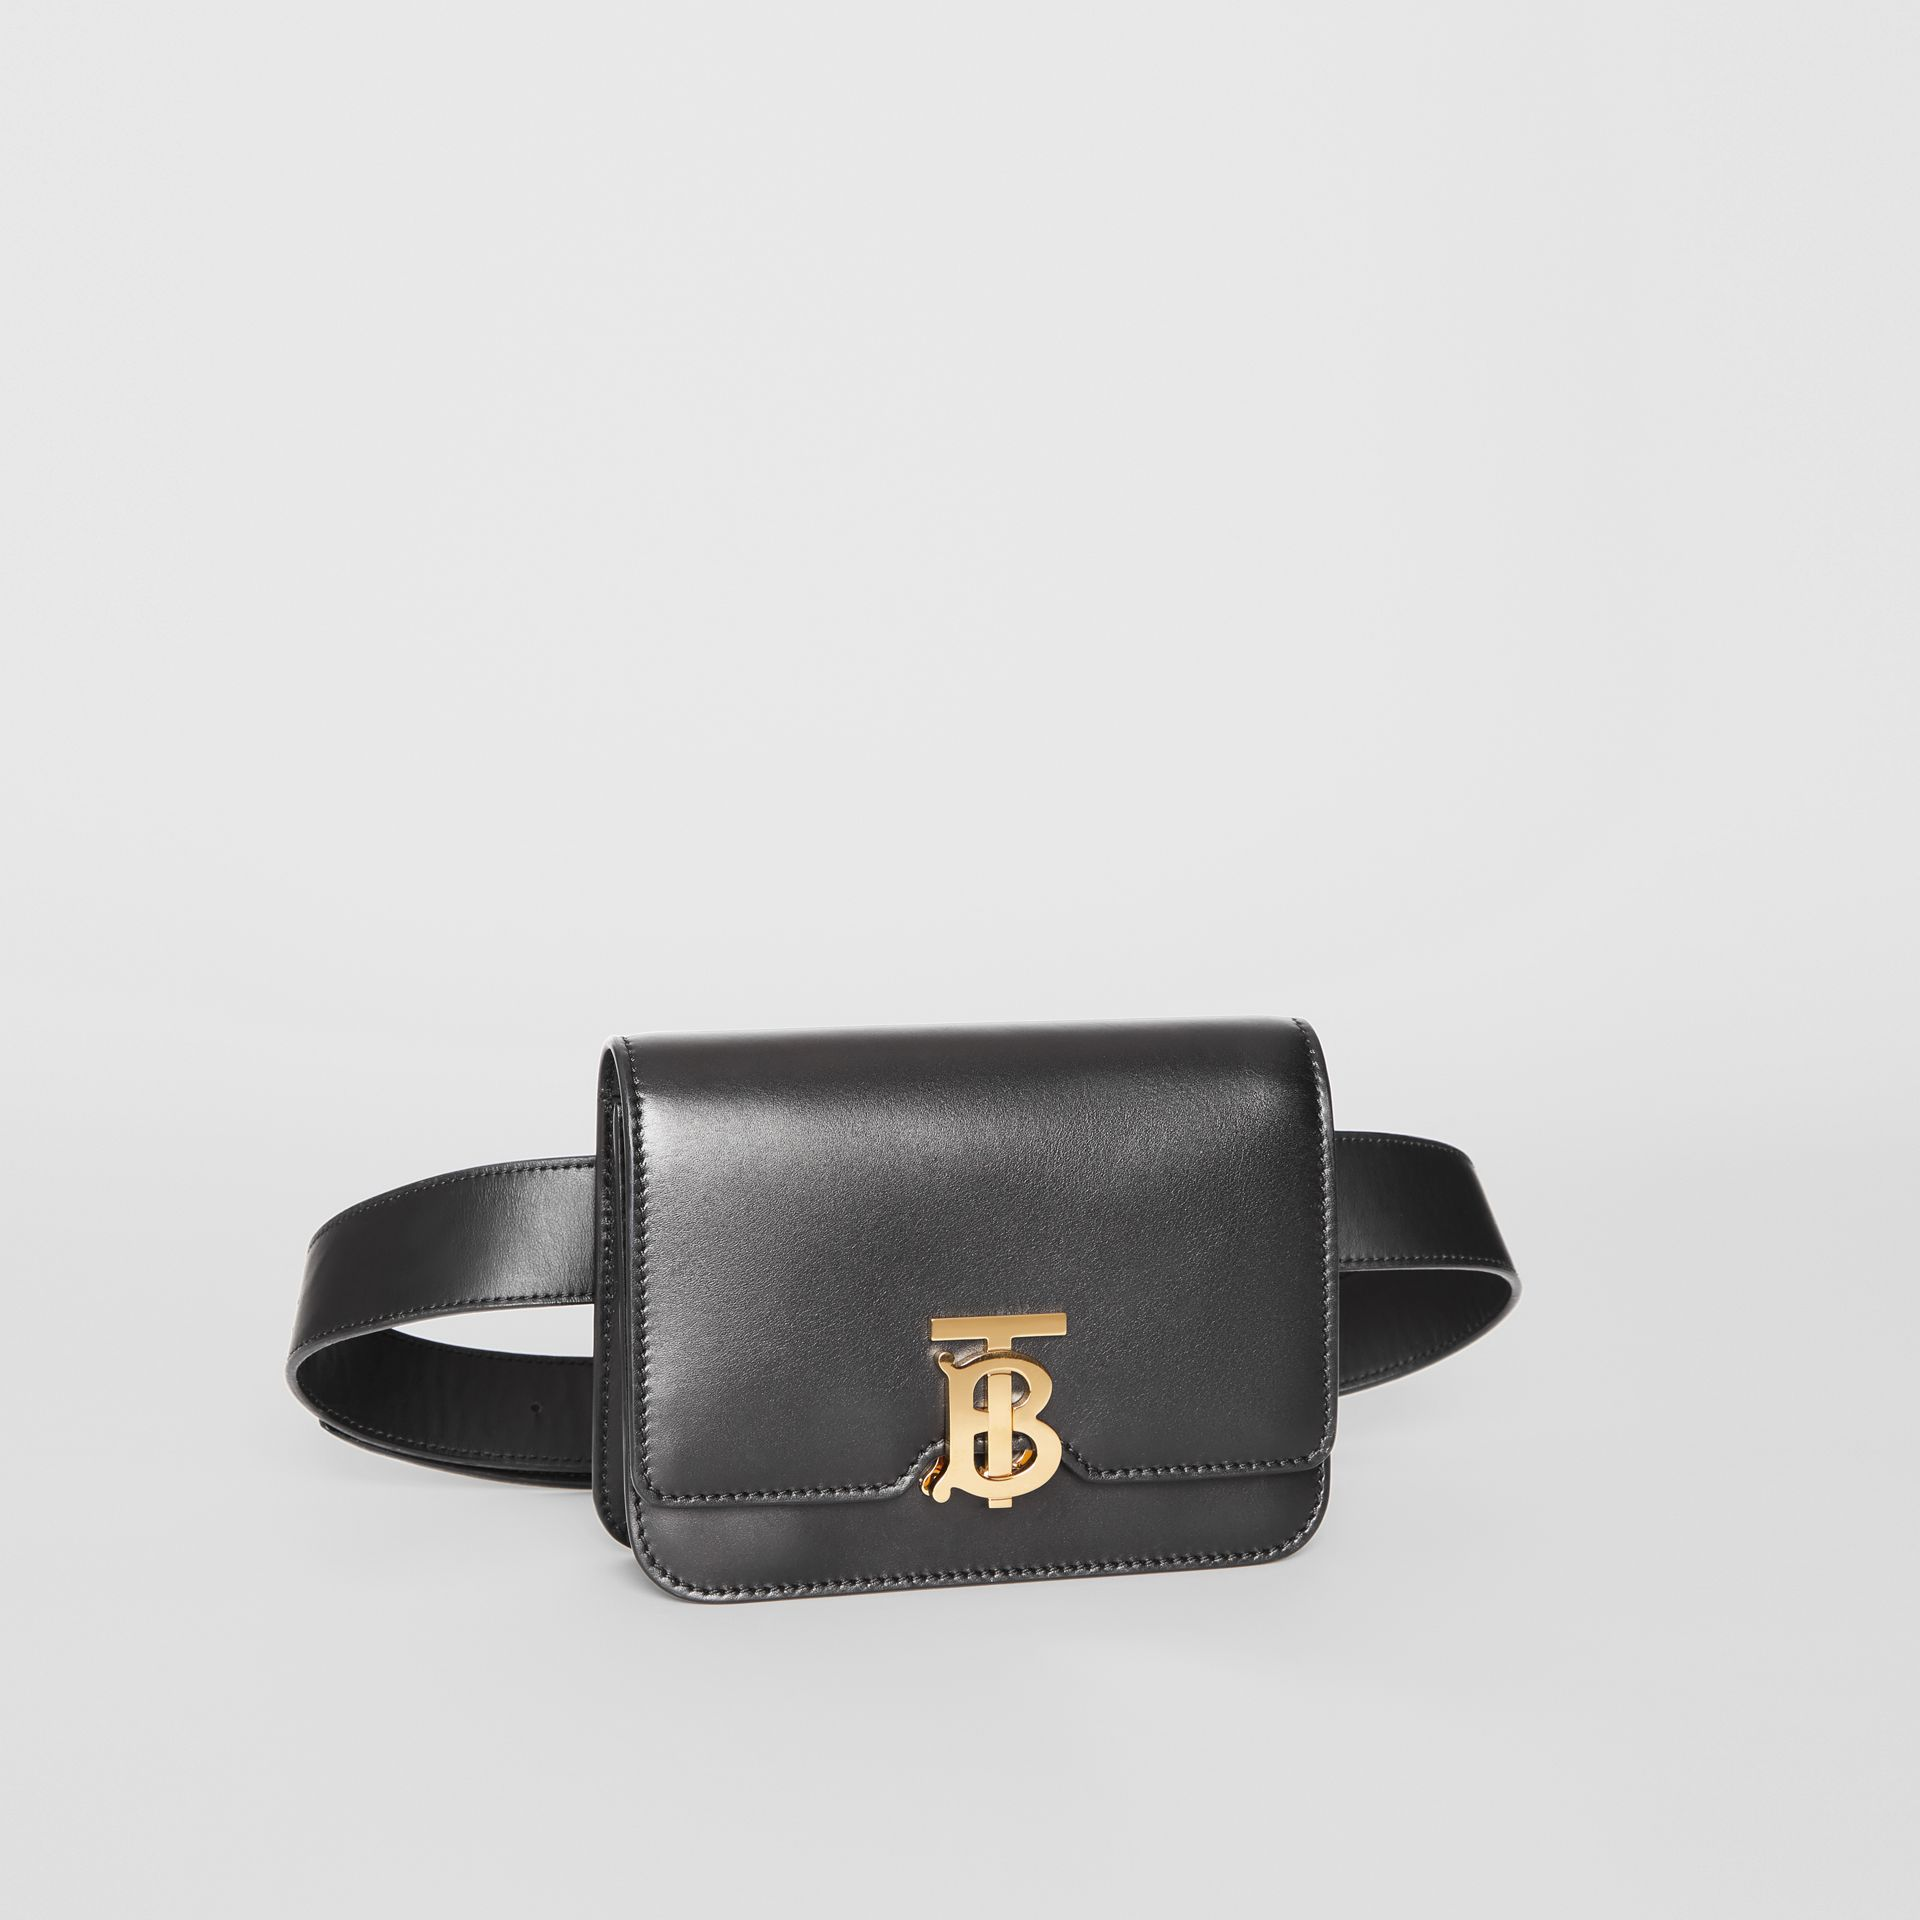 Belted Leather TB Bag in Black - Women | Burberry - gallery image 8